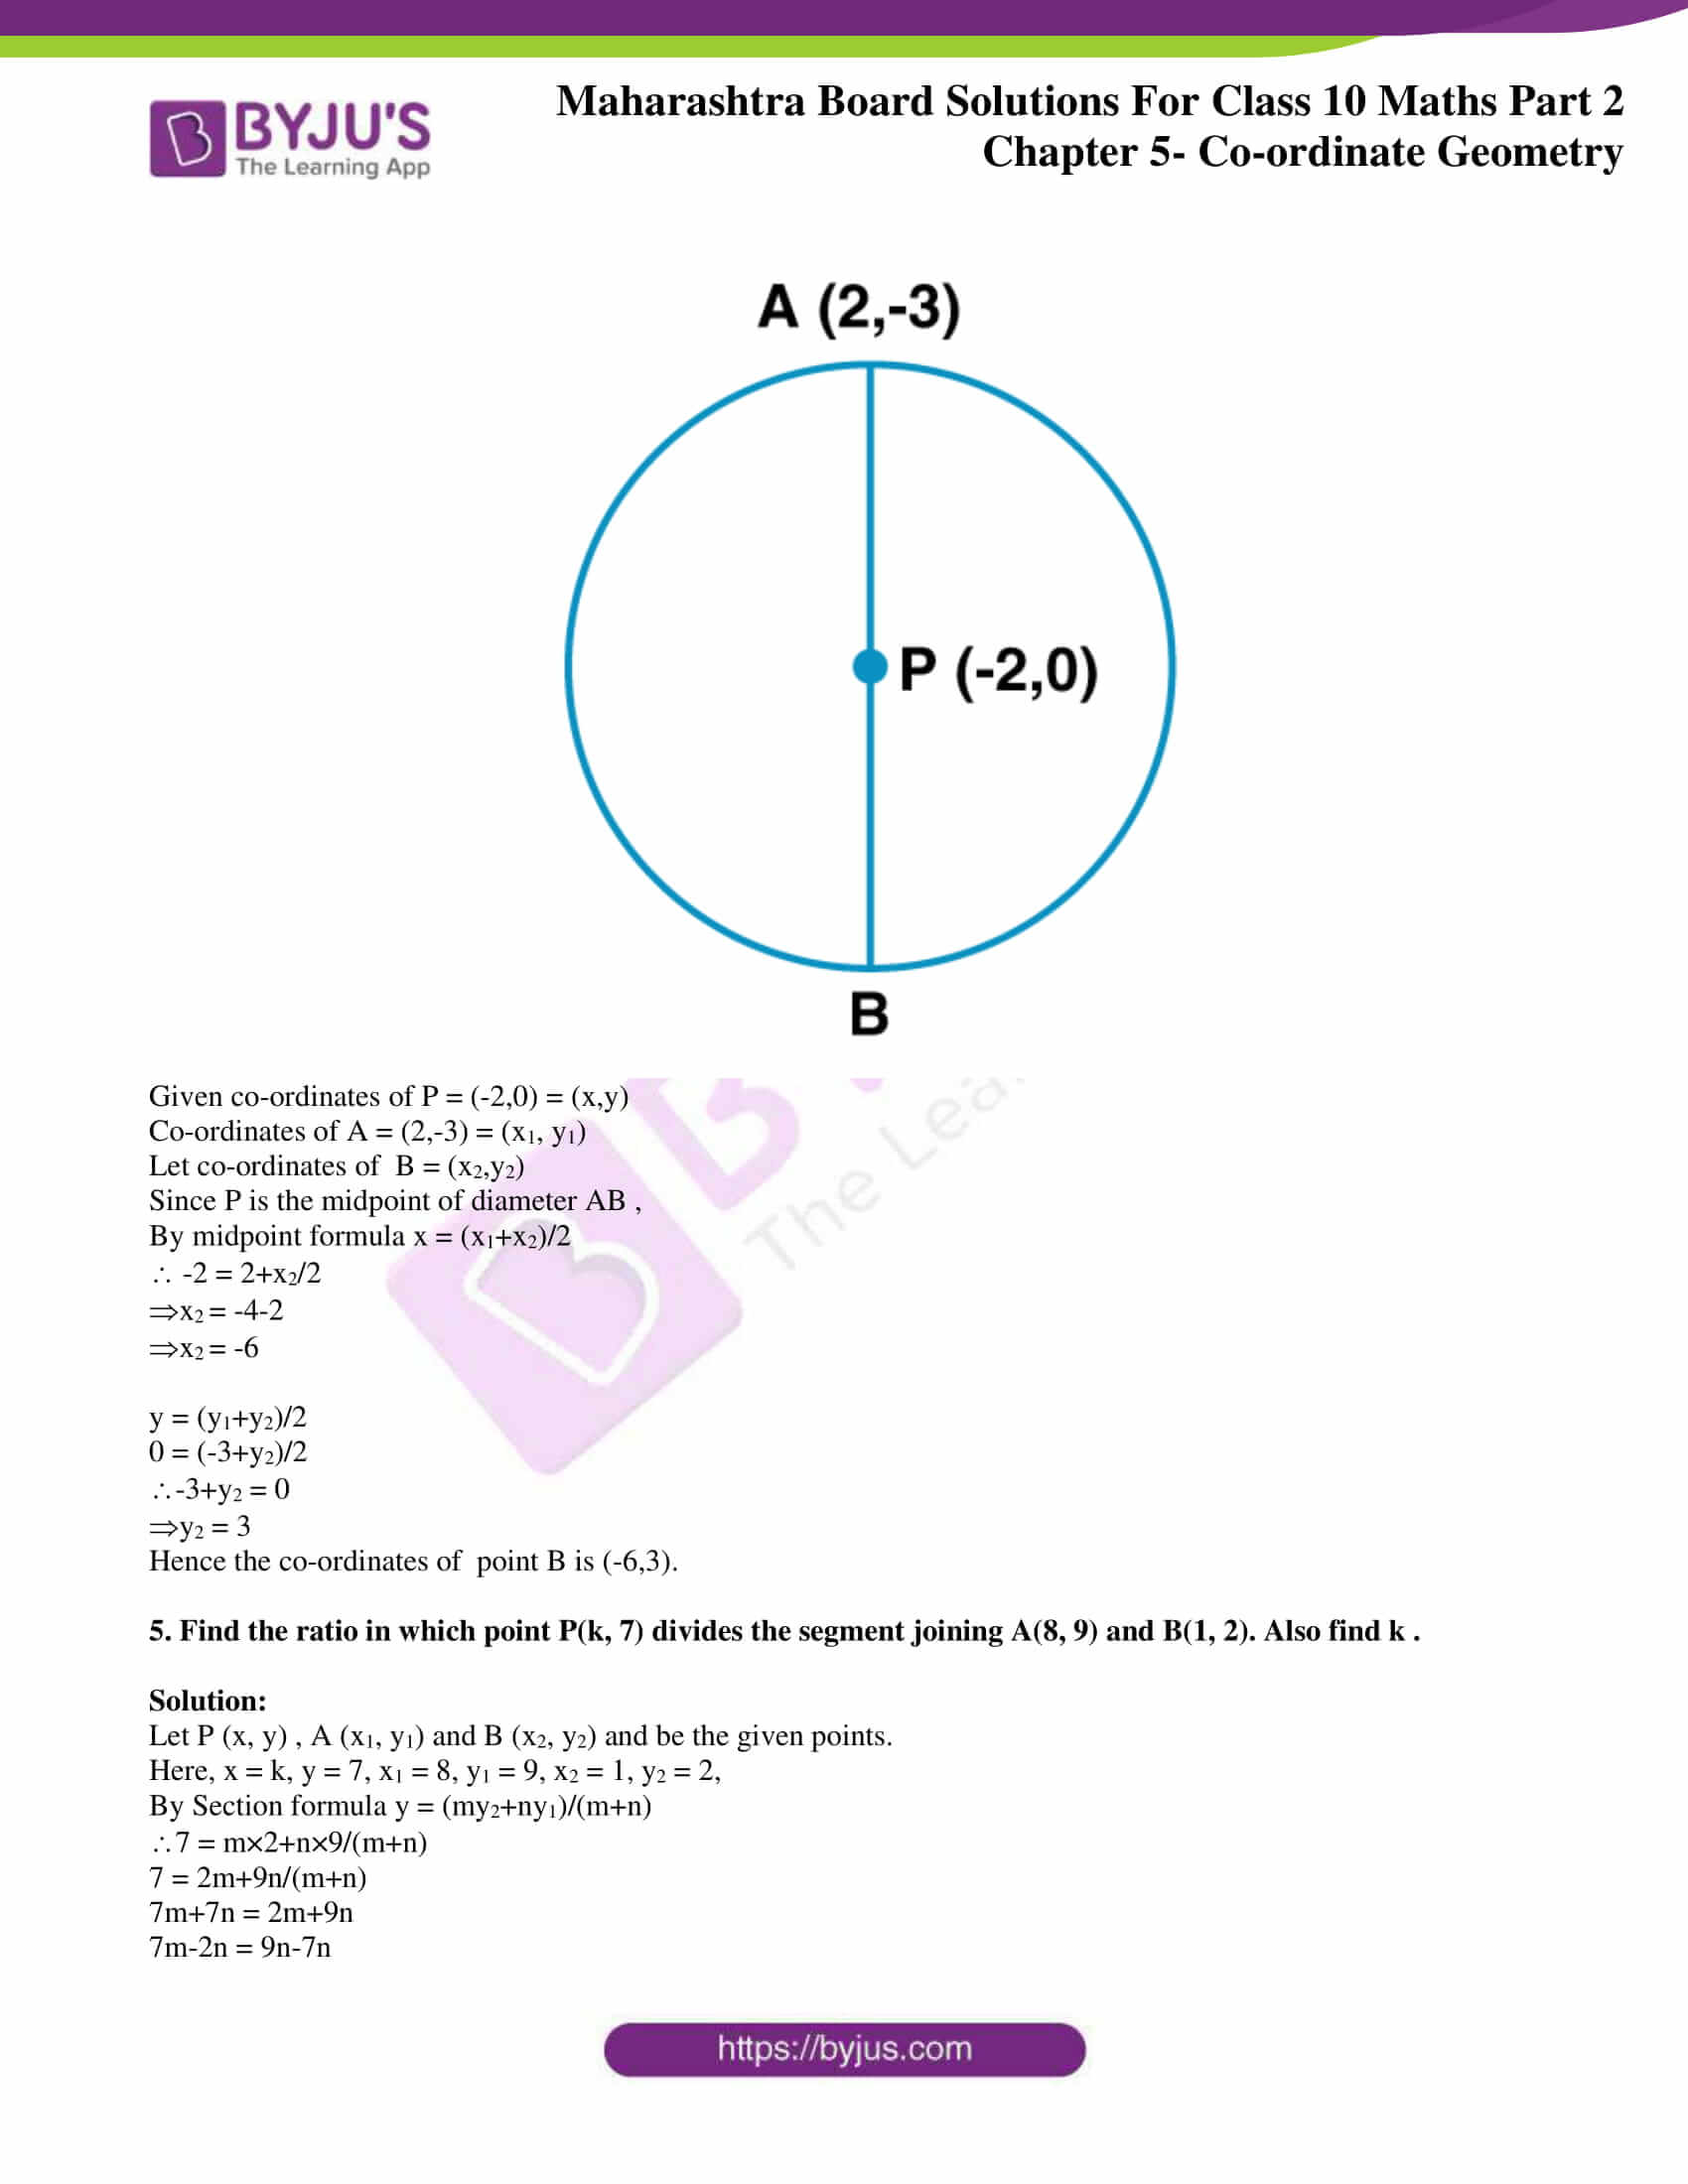 msbshse sol class 10 maths part 2 chapter 5 07